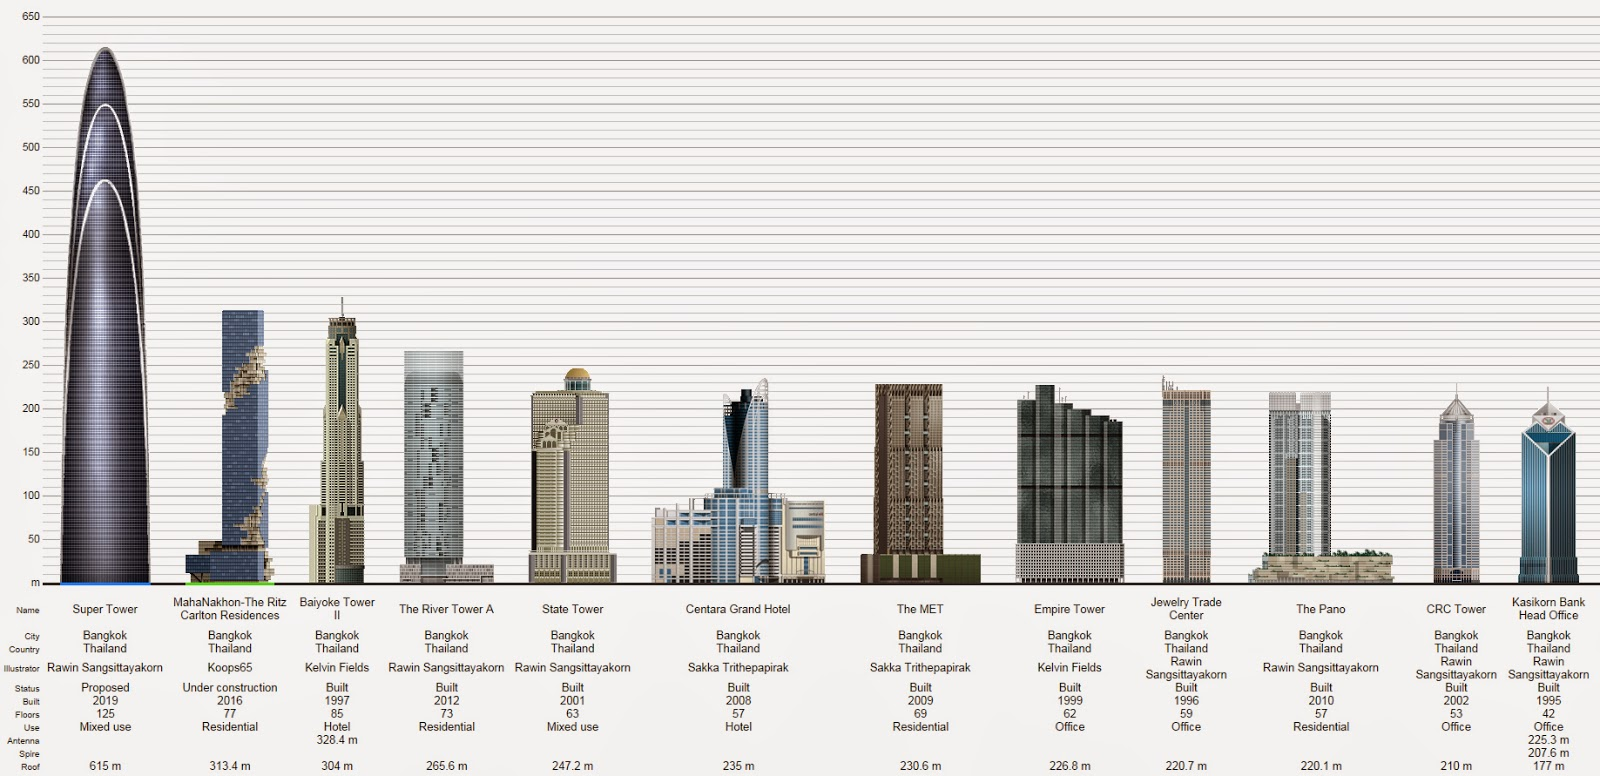 tallest skyscrapers in Bangkok, Thailand